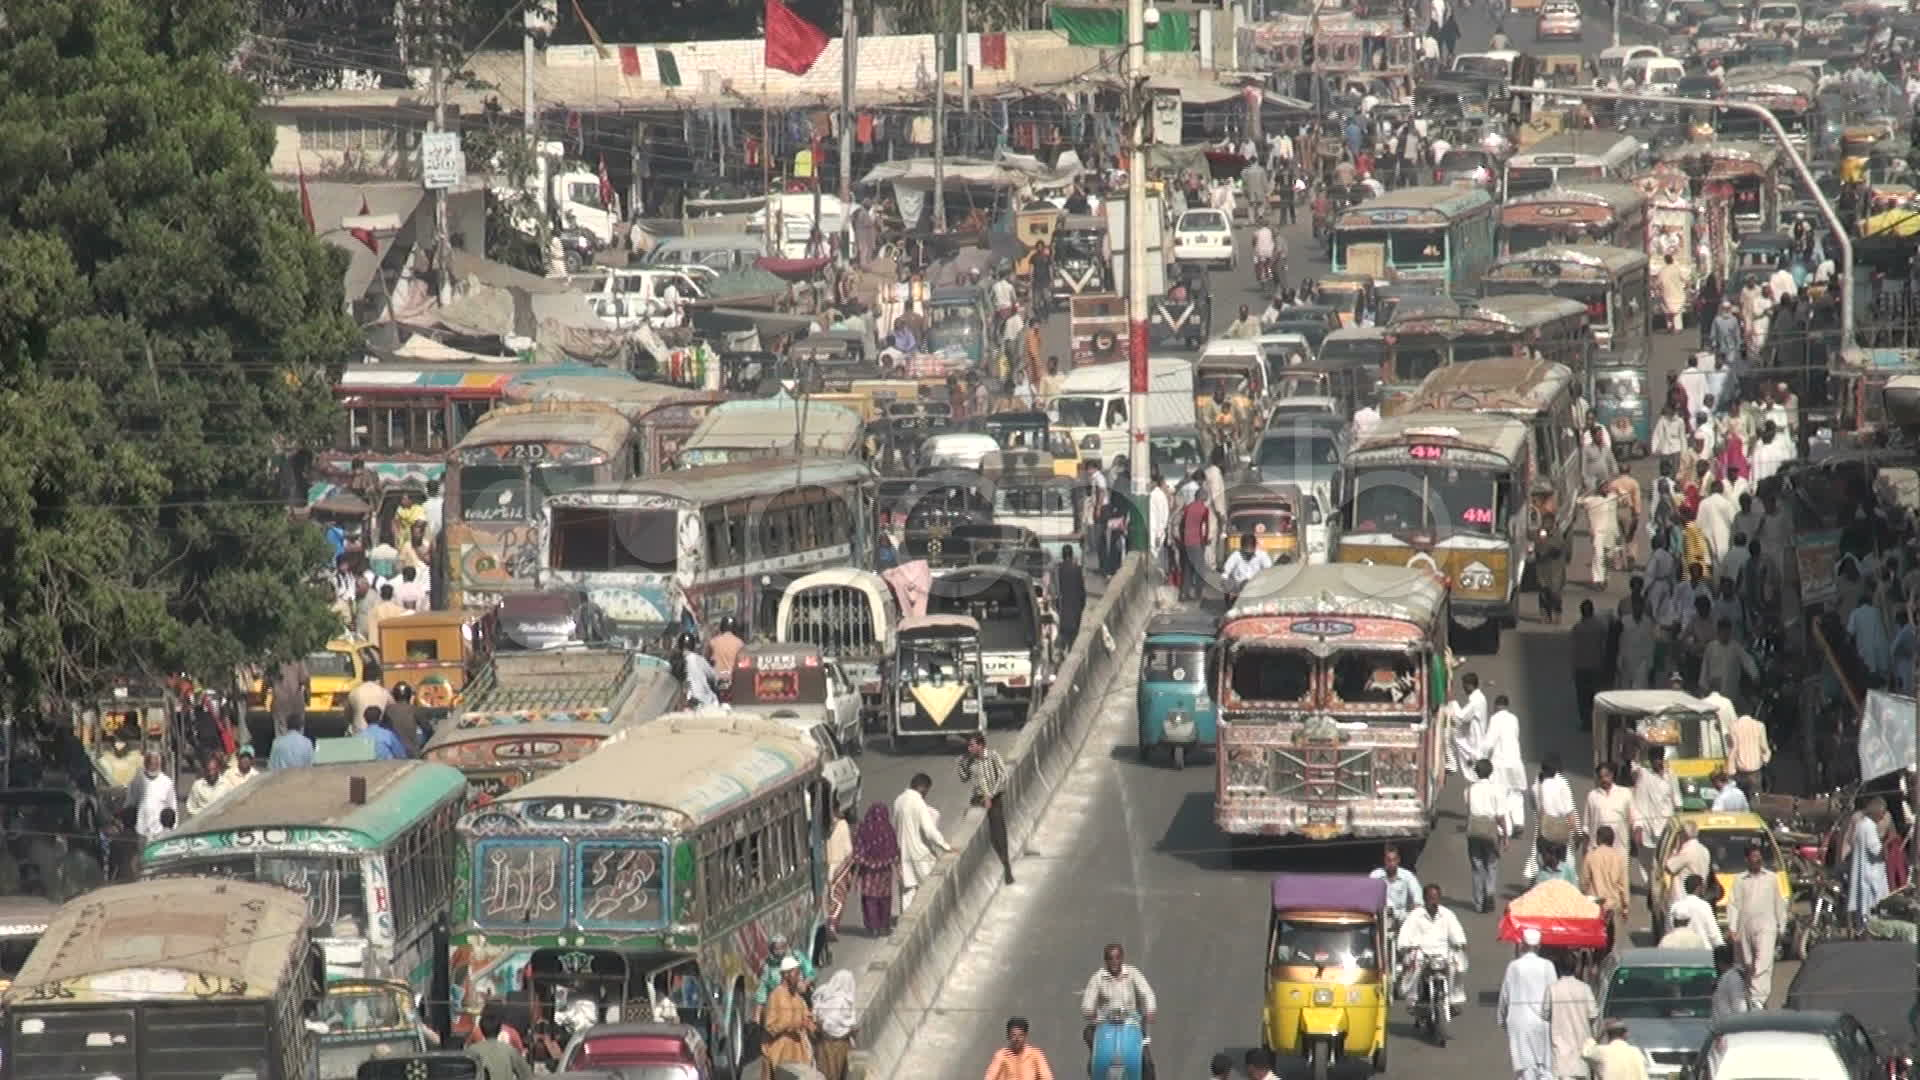 A normal day on busy Karachi streets with massive traffic